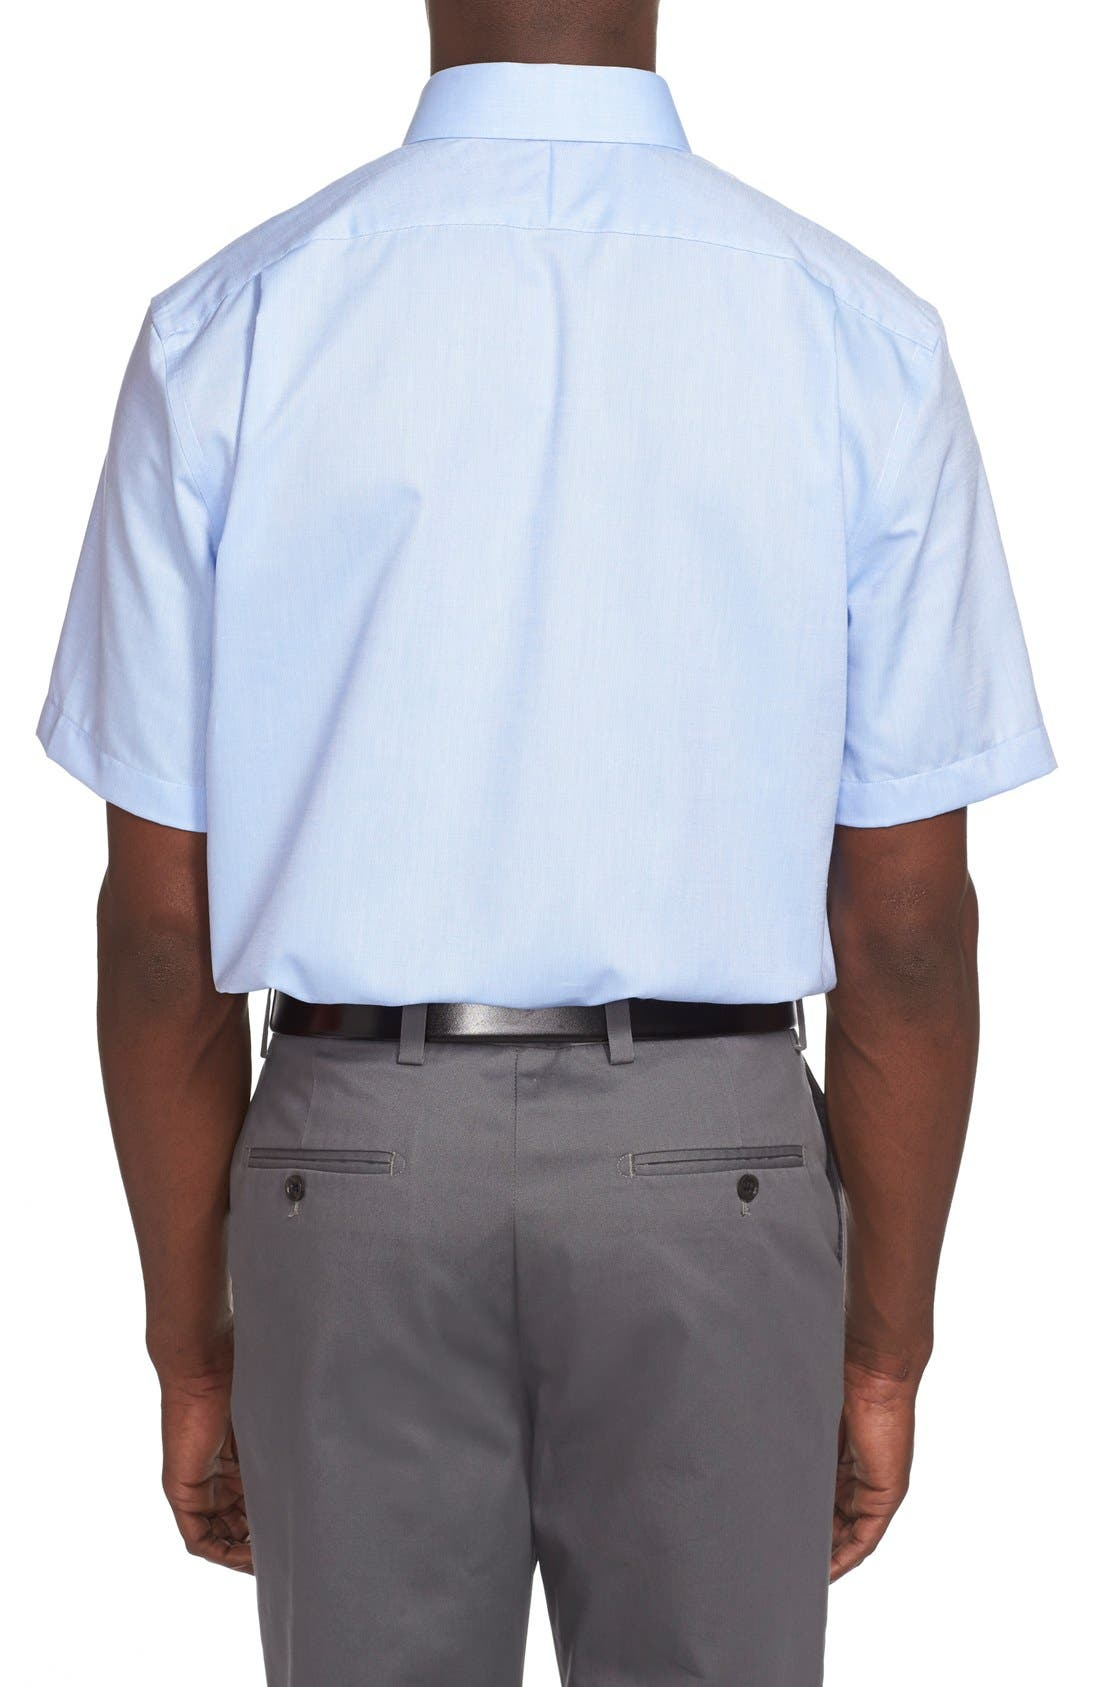 Alternate Image 3  - Nordstrom Men's Shop Traditional Fit Non-Iron Short Sleeve Dress Shirt (Online Only)